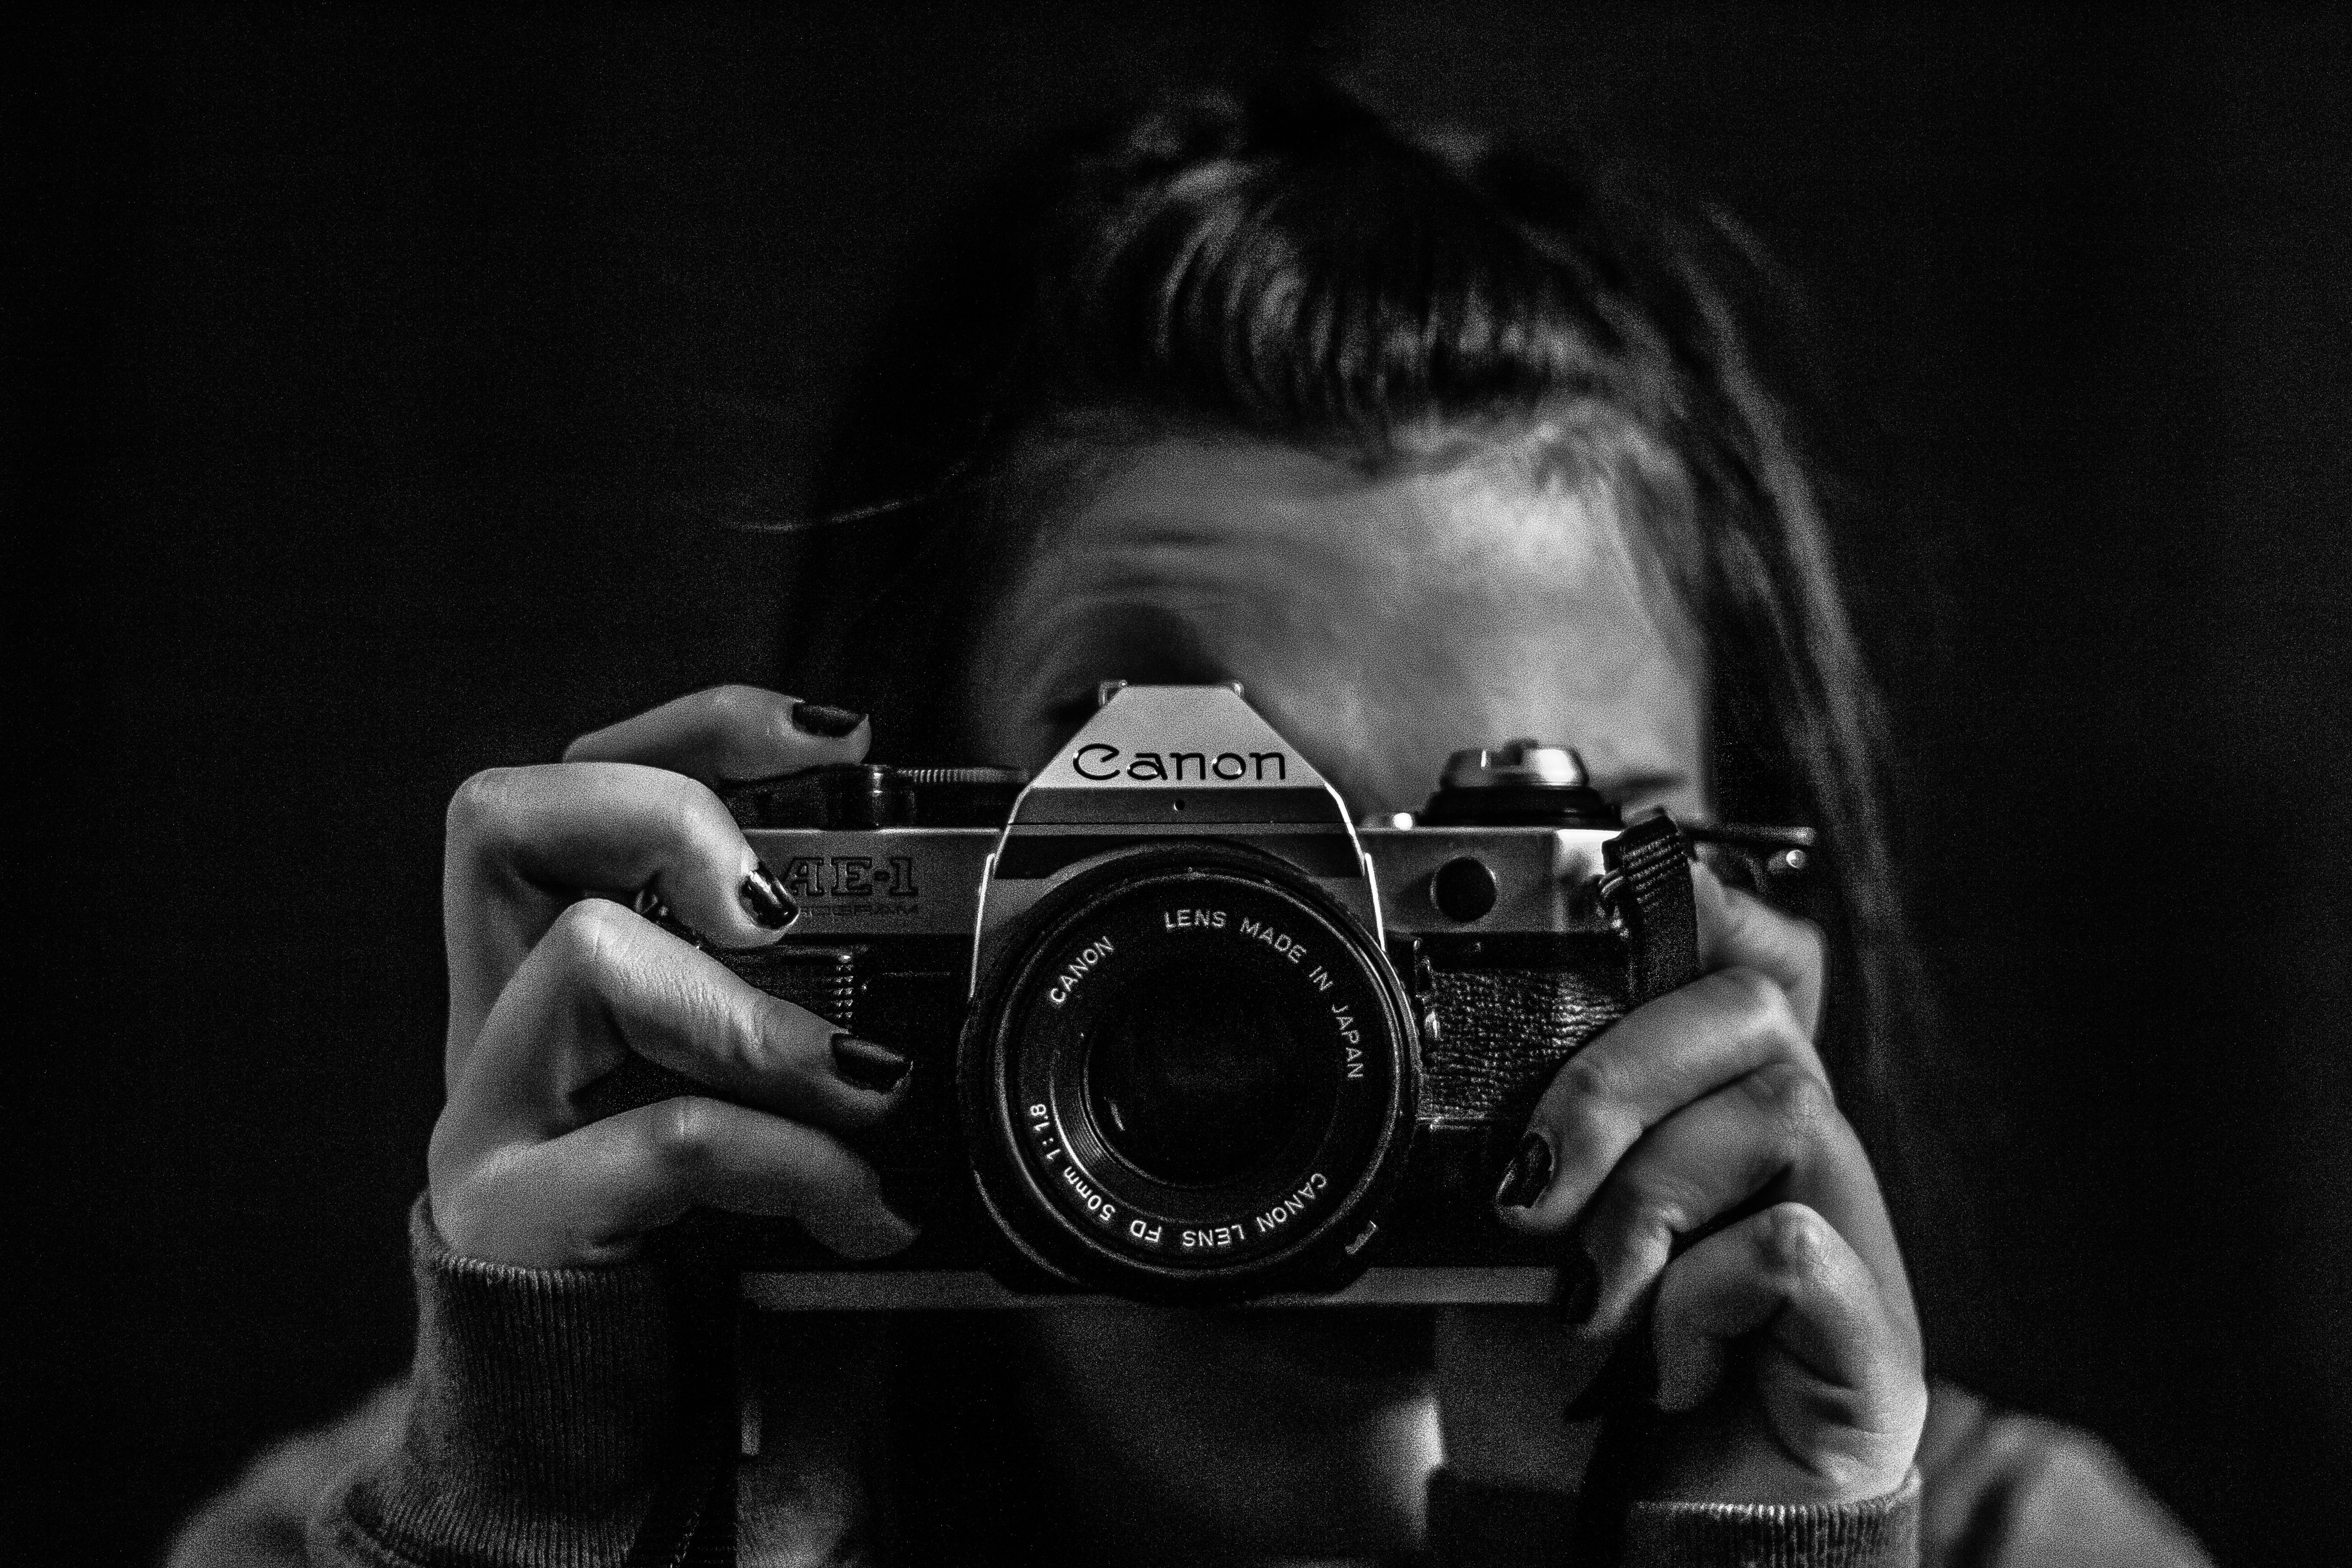 grayscale photo of woman talking photo using Canon camera